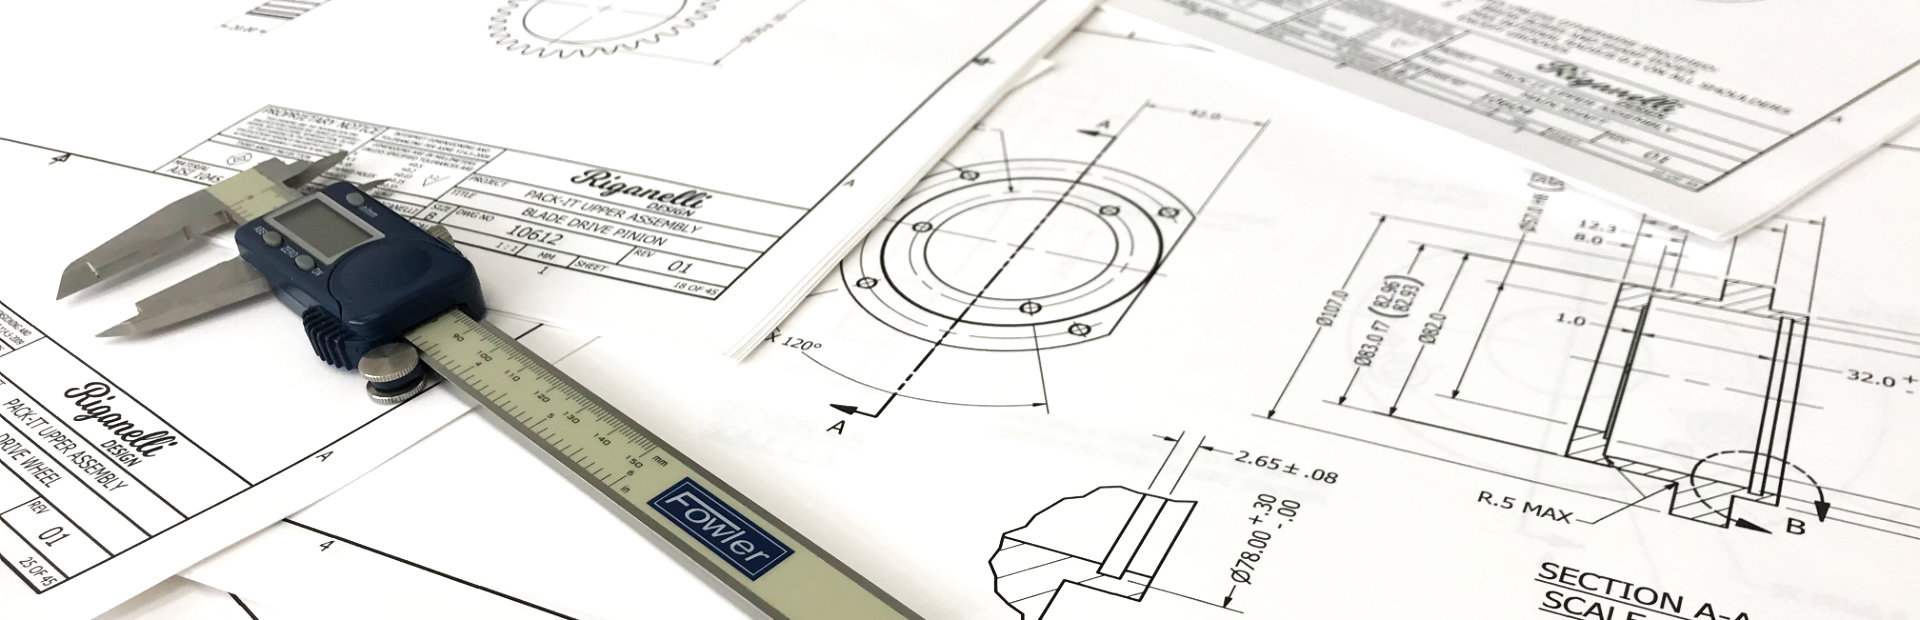 Technical drawings with digital calipers.